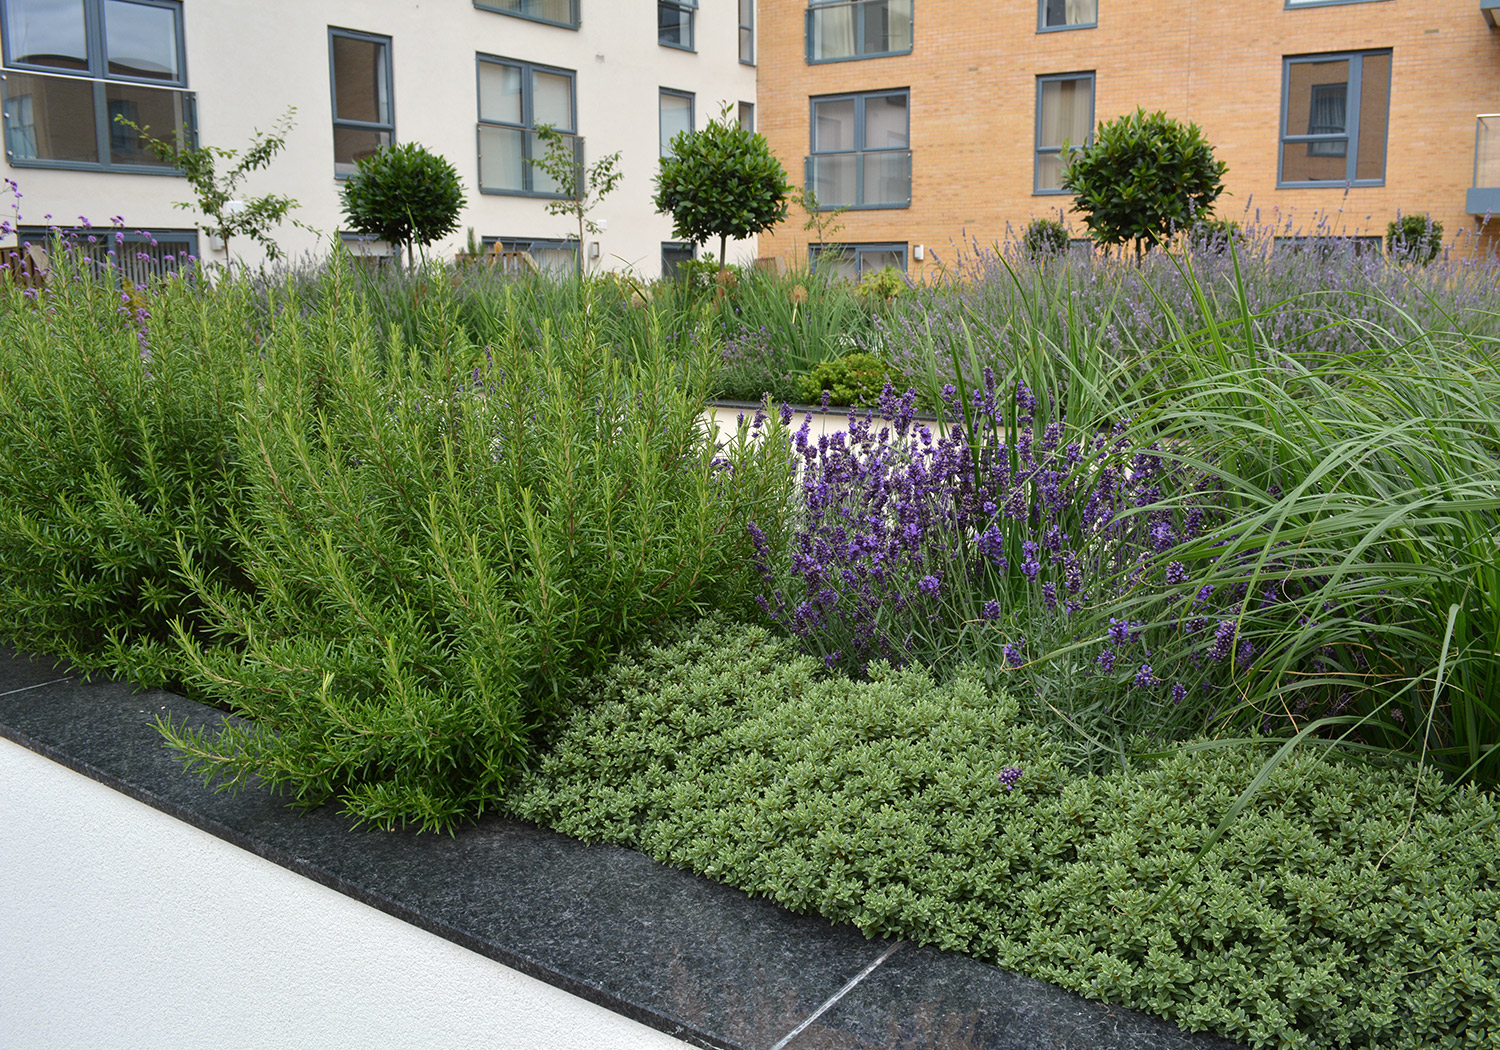 Projects-Residential-KennettIsland_Planting-1500x1050